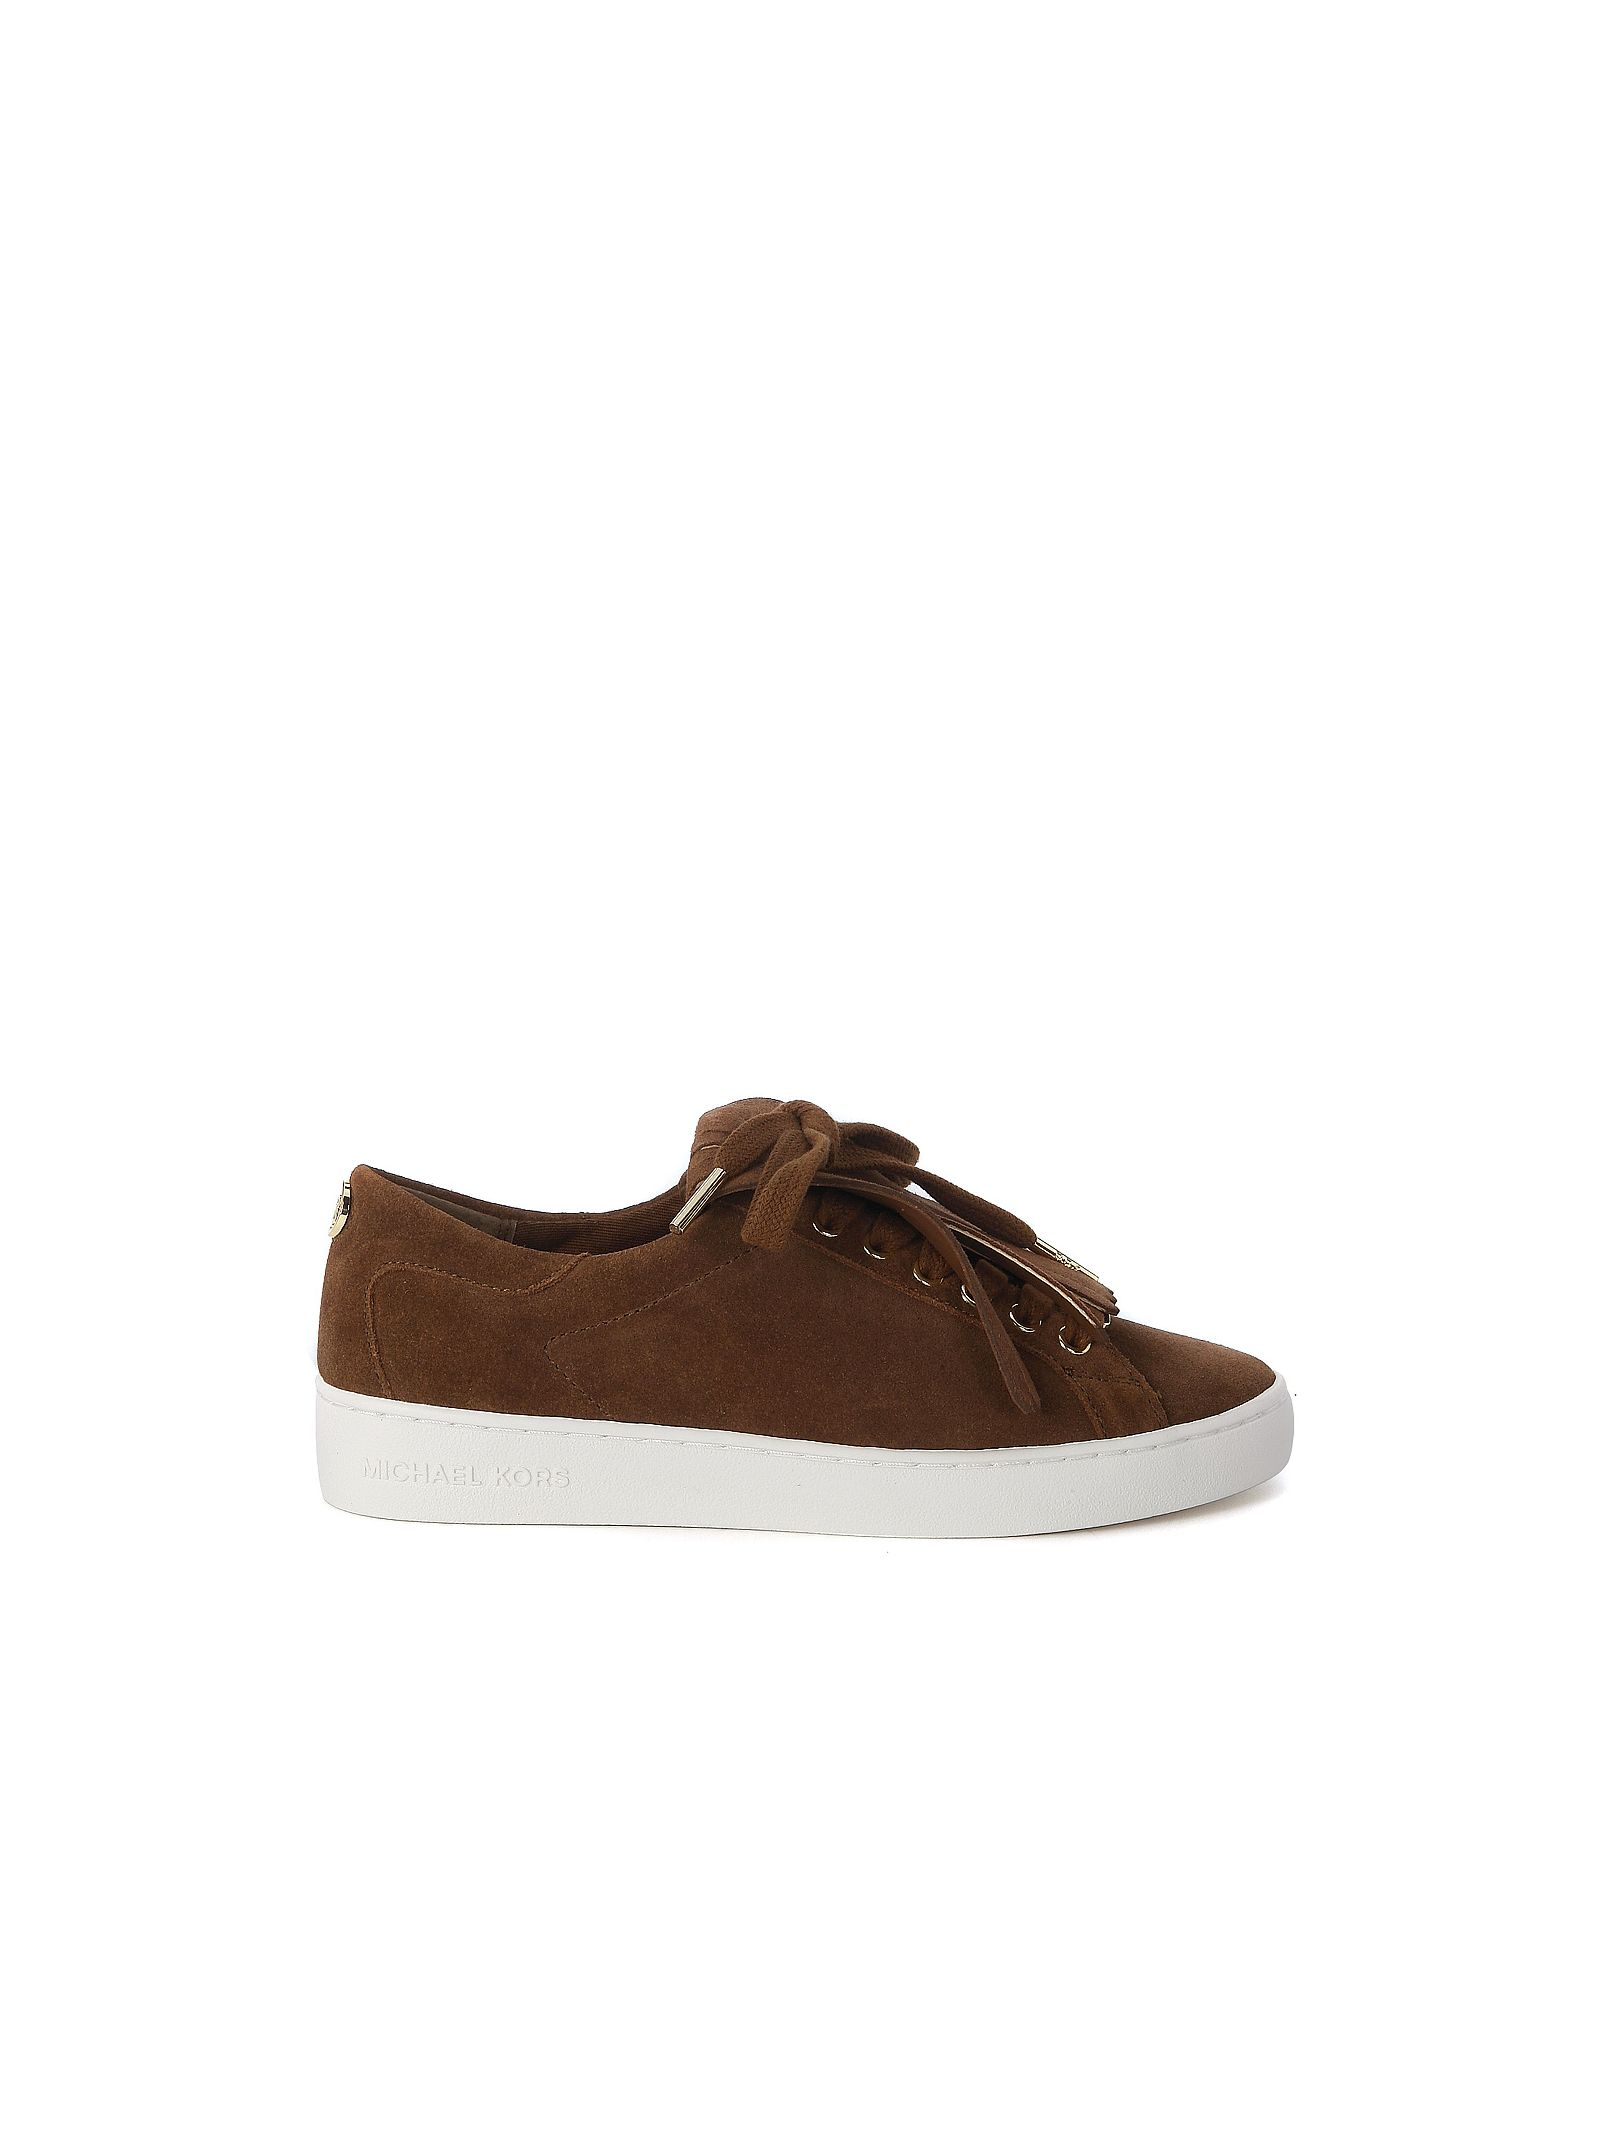 michael kors female  michael kors keaton kiltie sneakers in dark brown suede